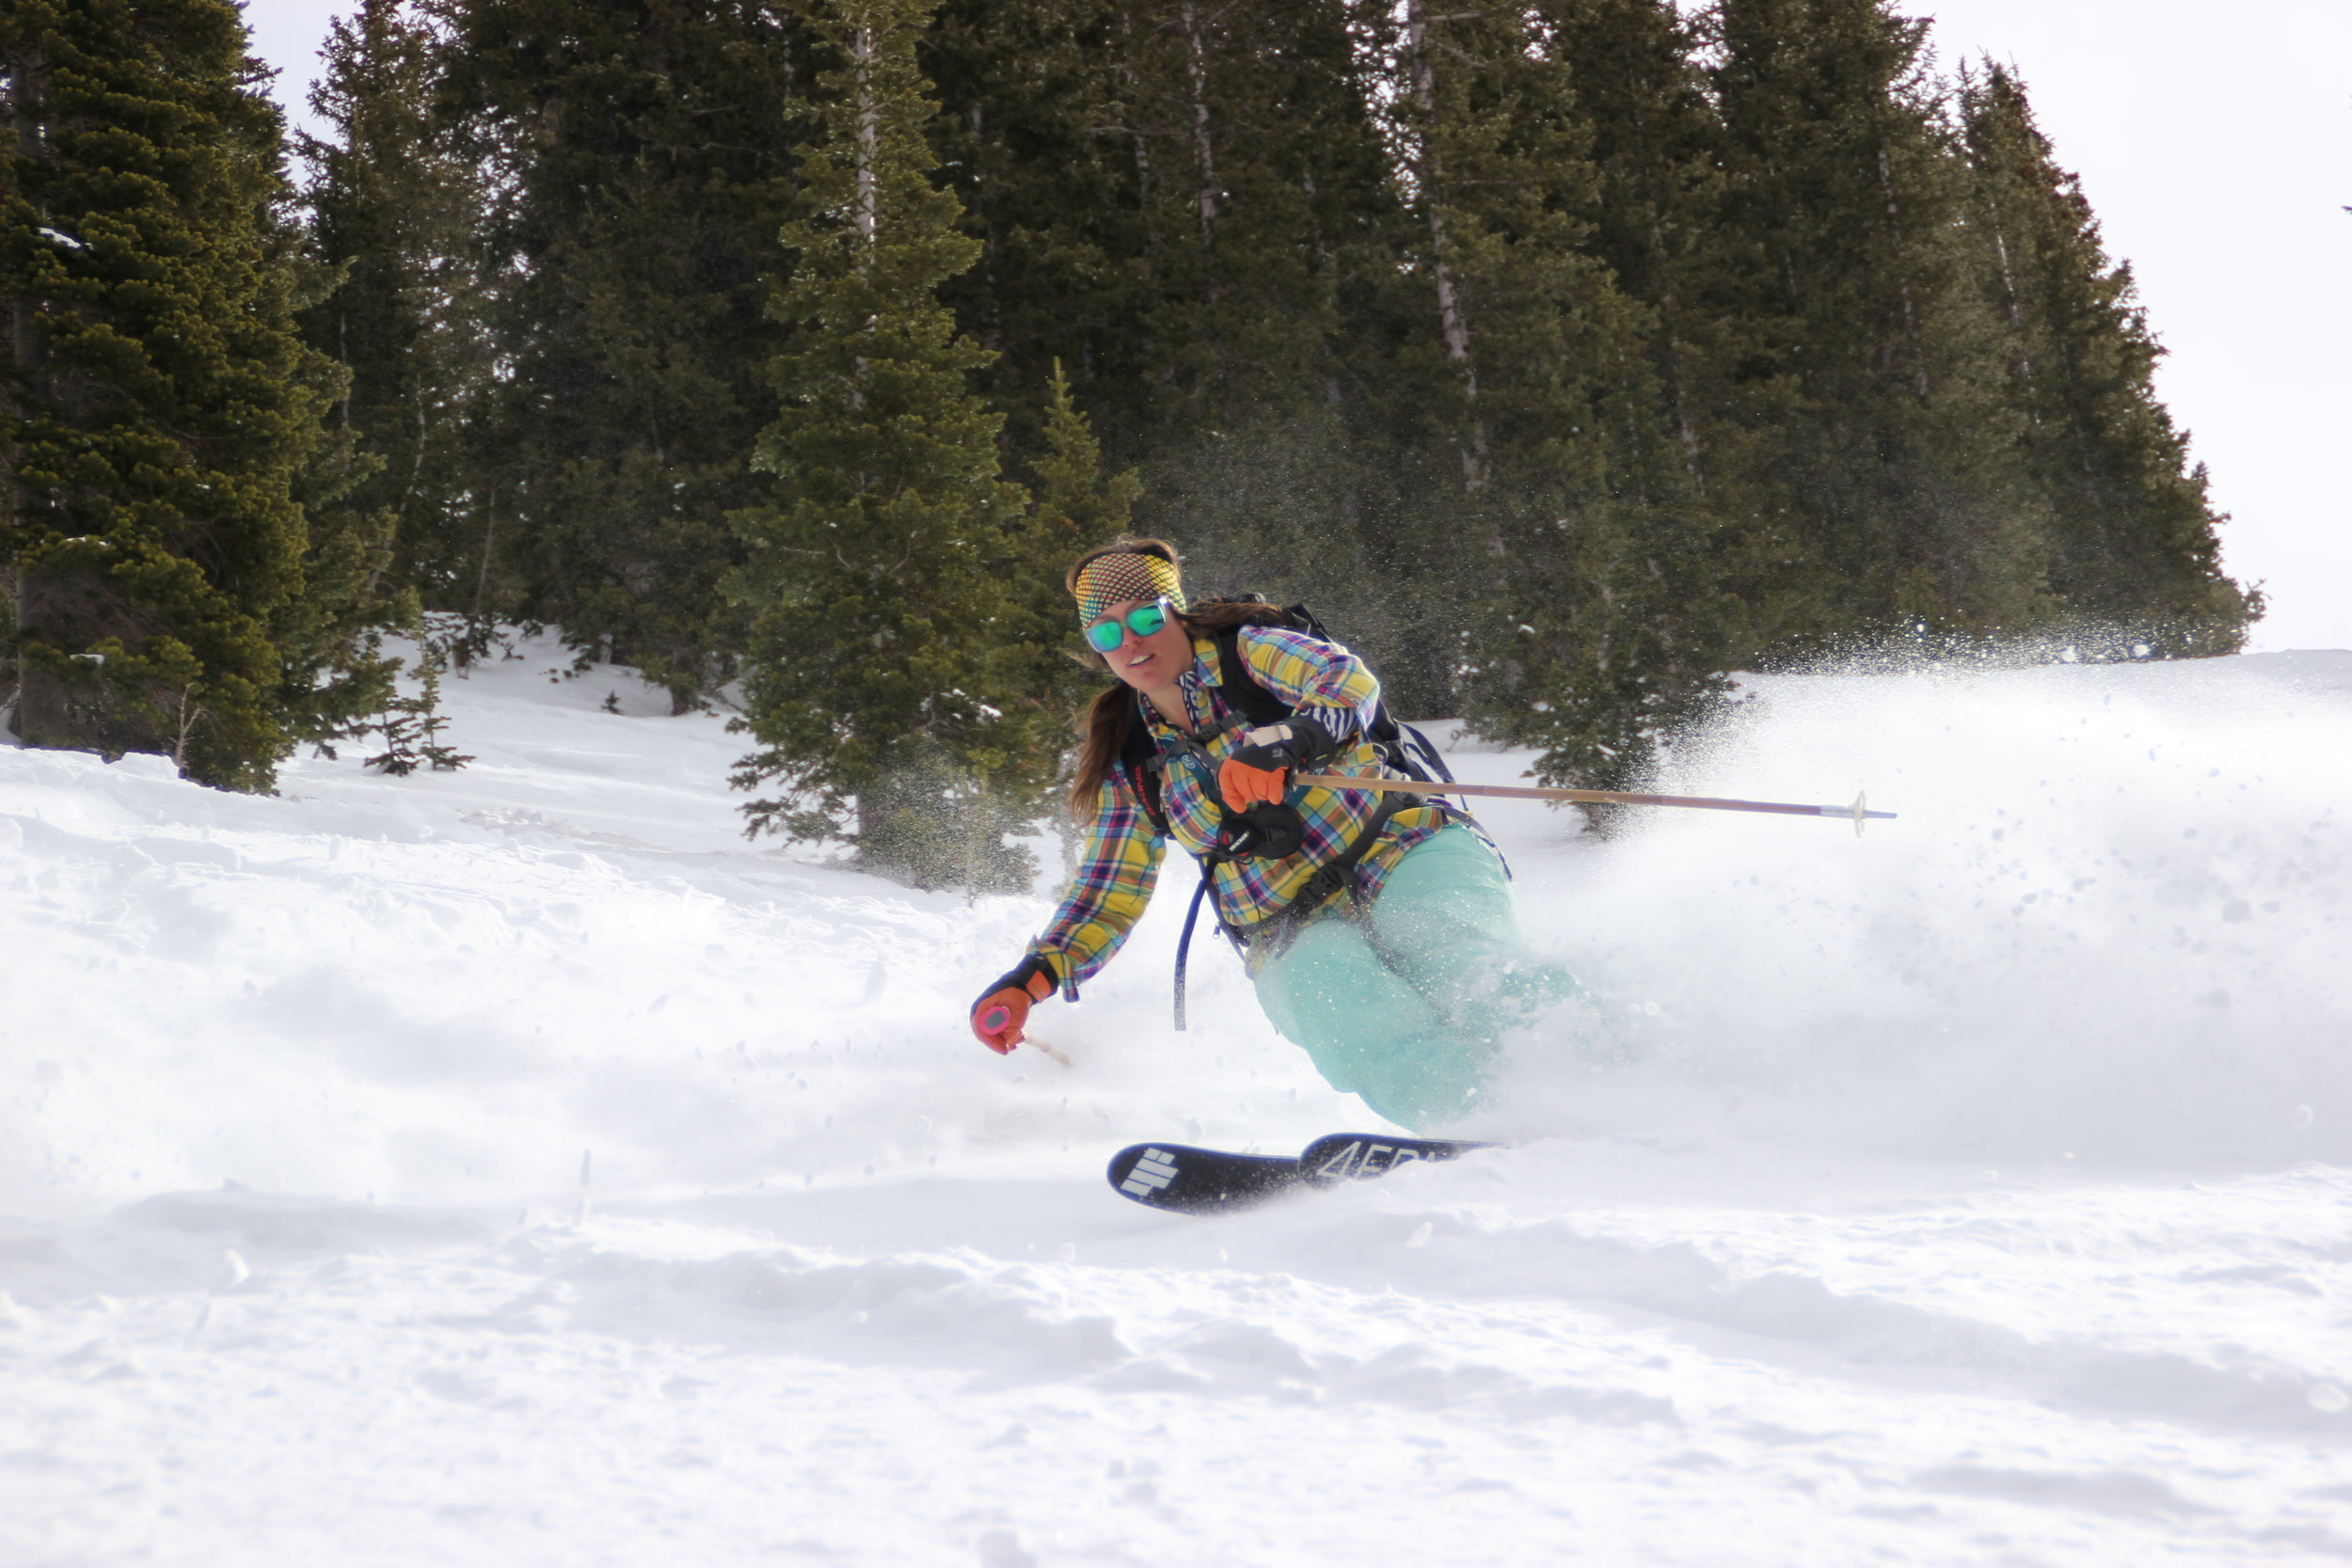 Brighton ski resort, UTAH, USA. Deep snow. Skier: Claire Smallwood